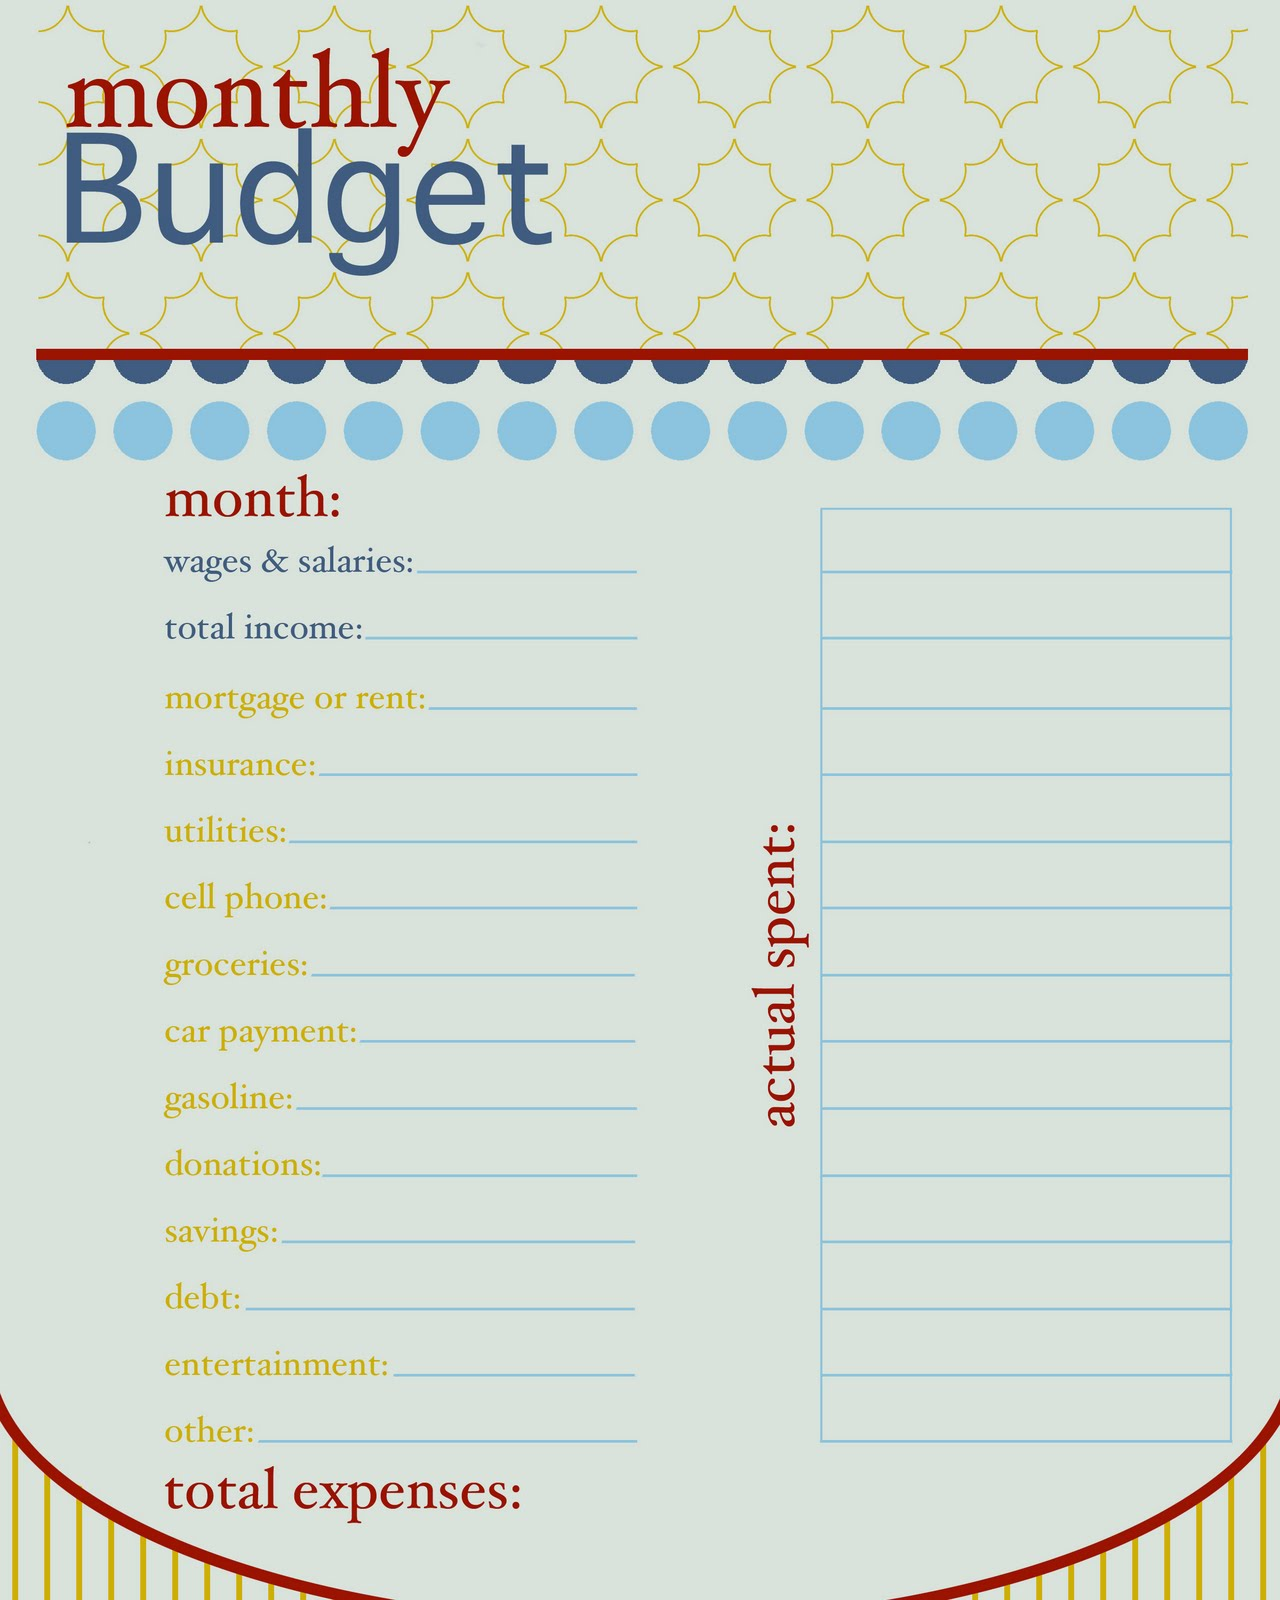 Worksheets Free Budgeting Worksheets budgets worksheets daway dabrowa co worksheets